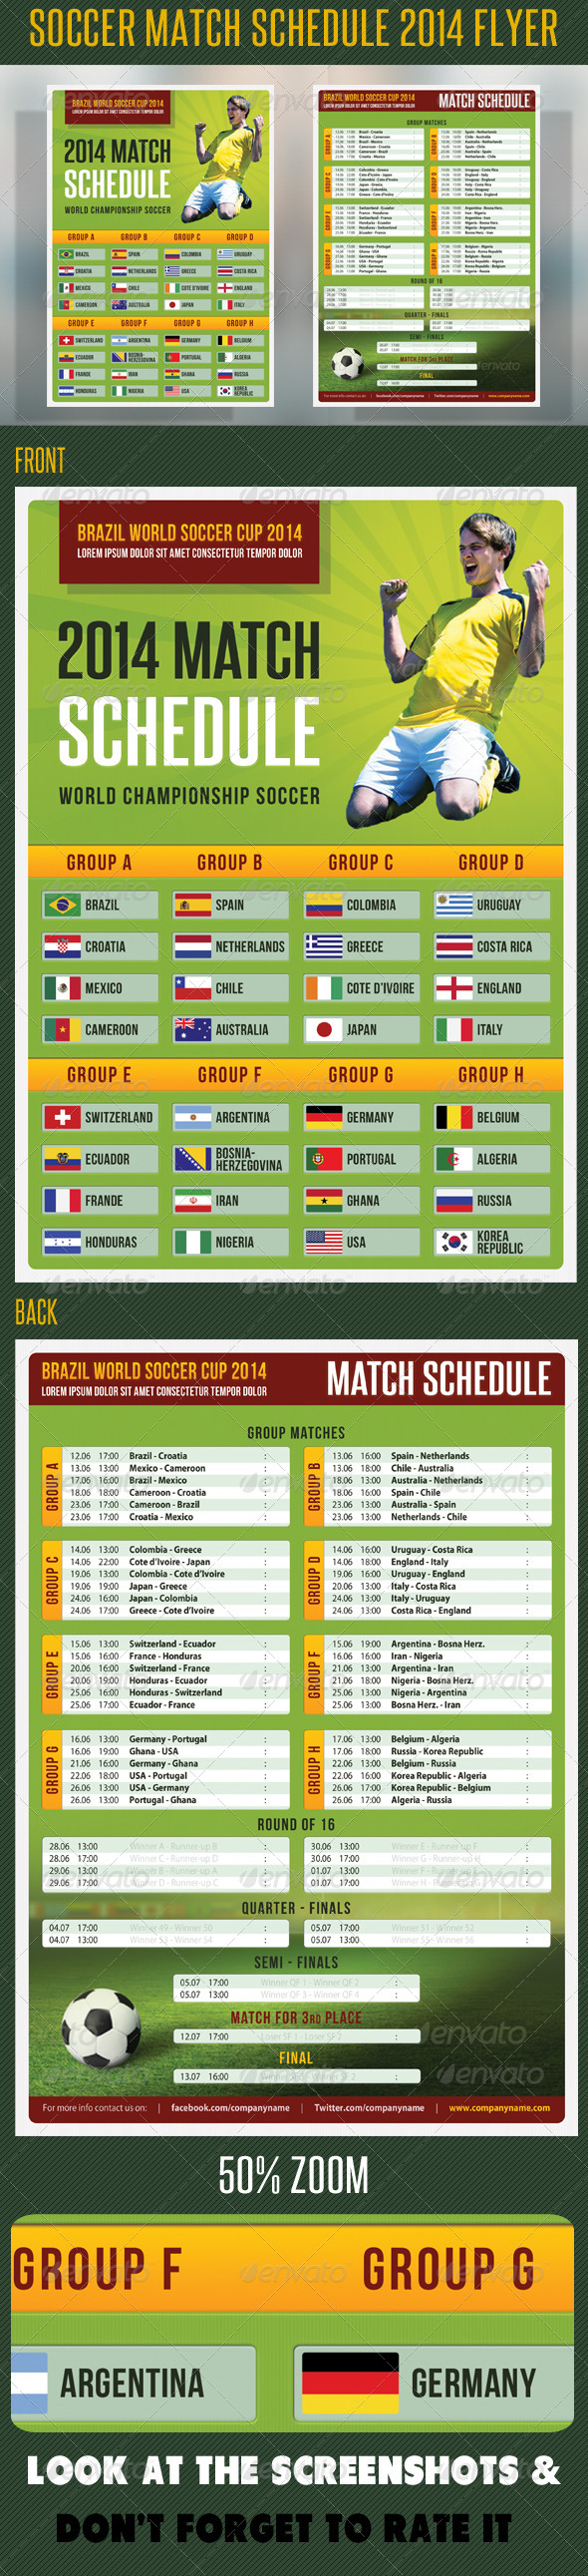 Soccer Match Schedule 2014 Flyer - Sports Events